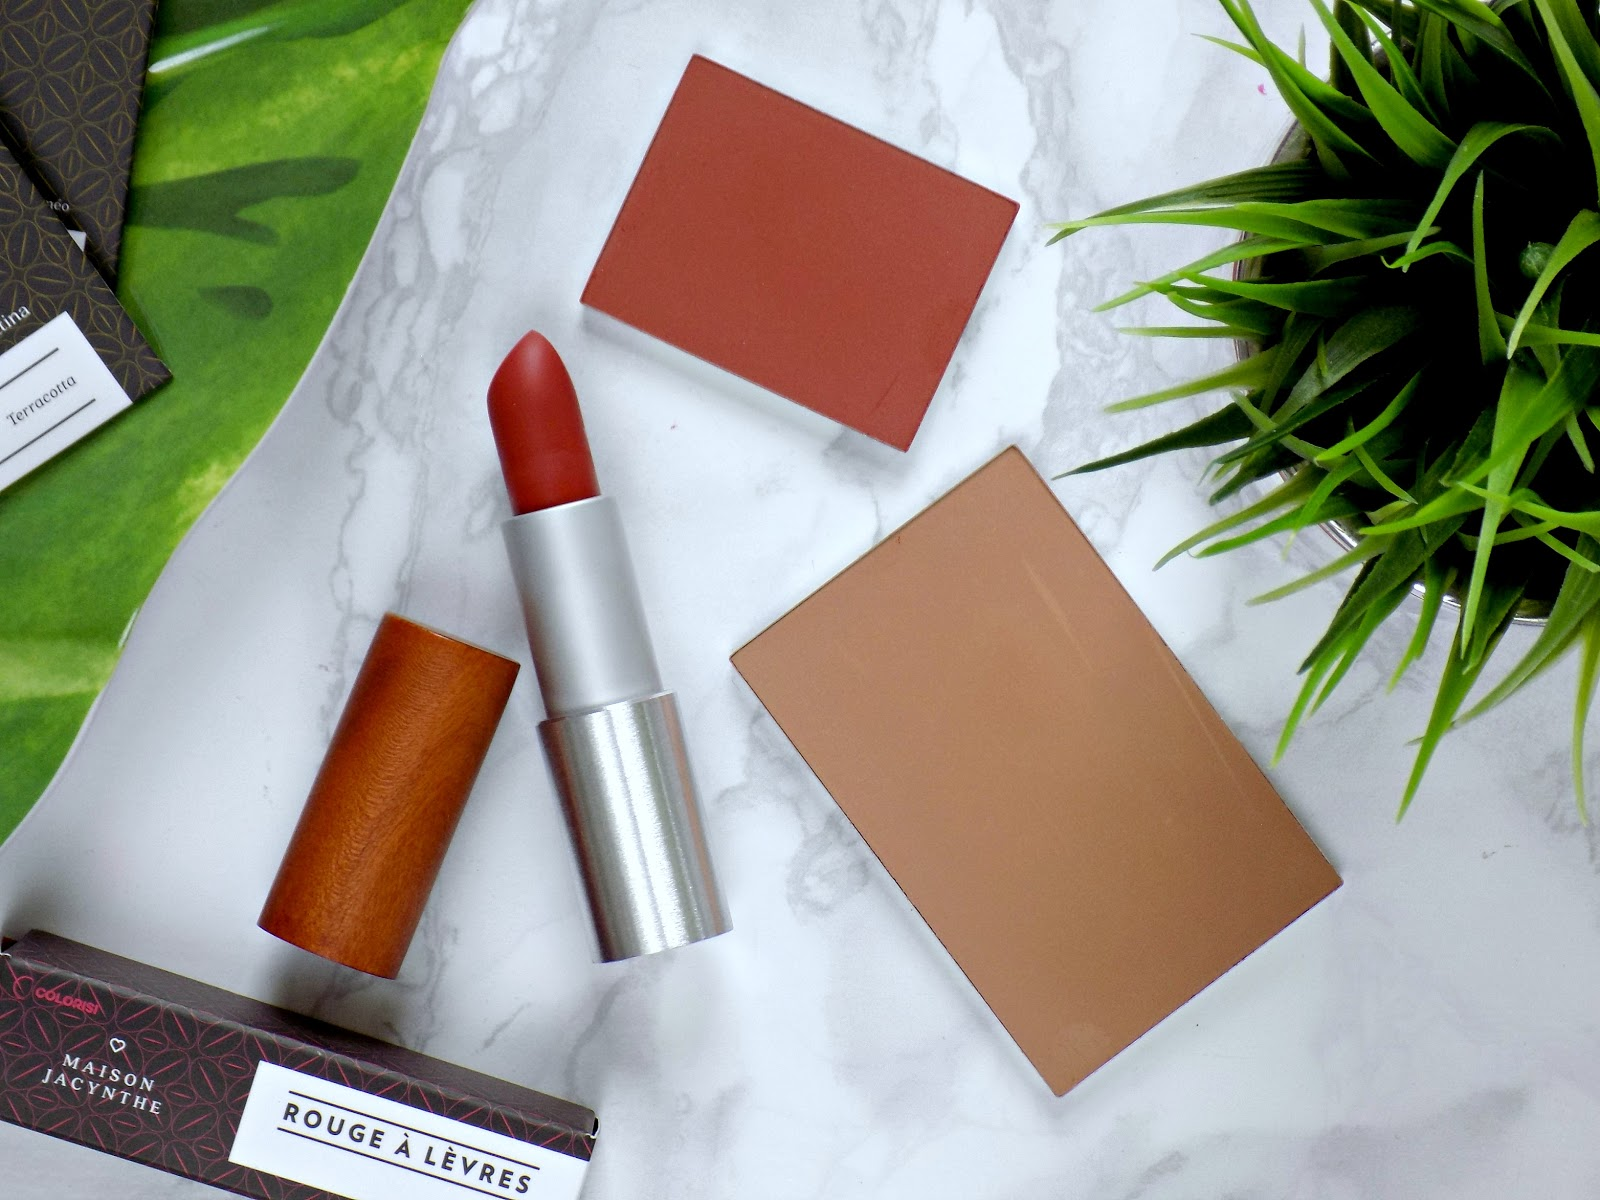 new makeup products from Maison Jacynthe